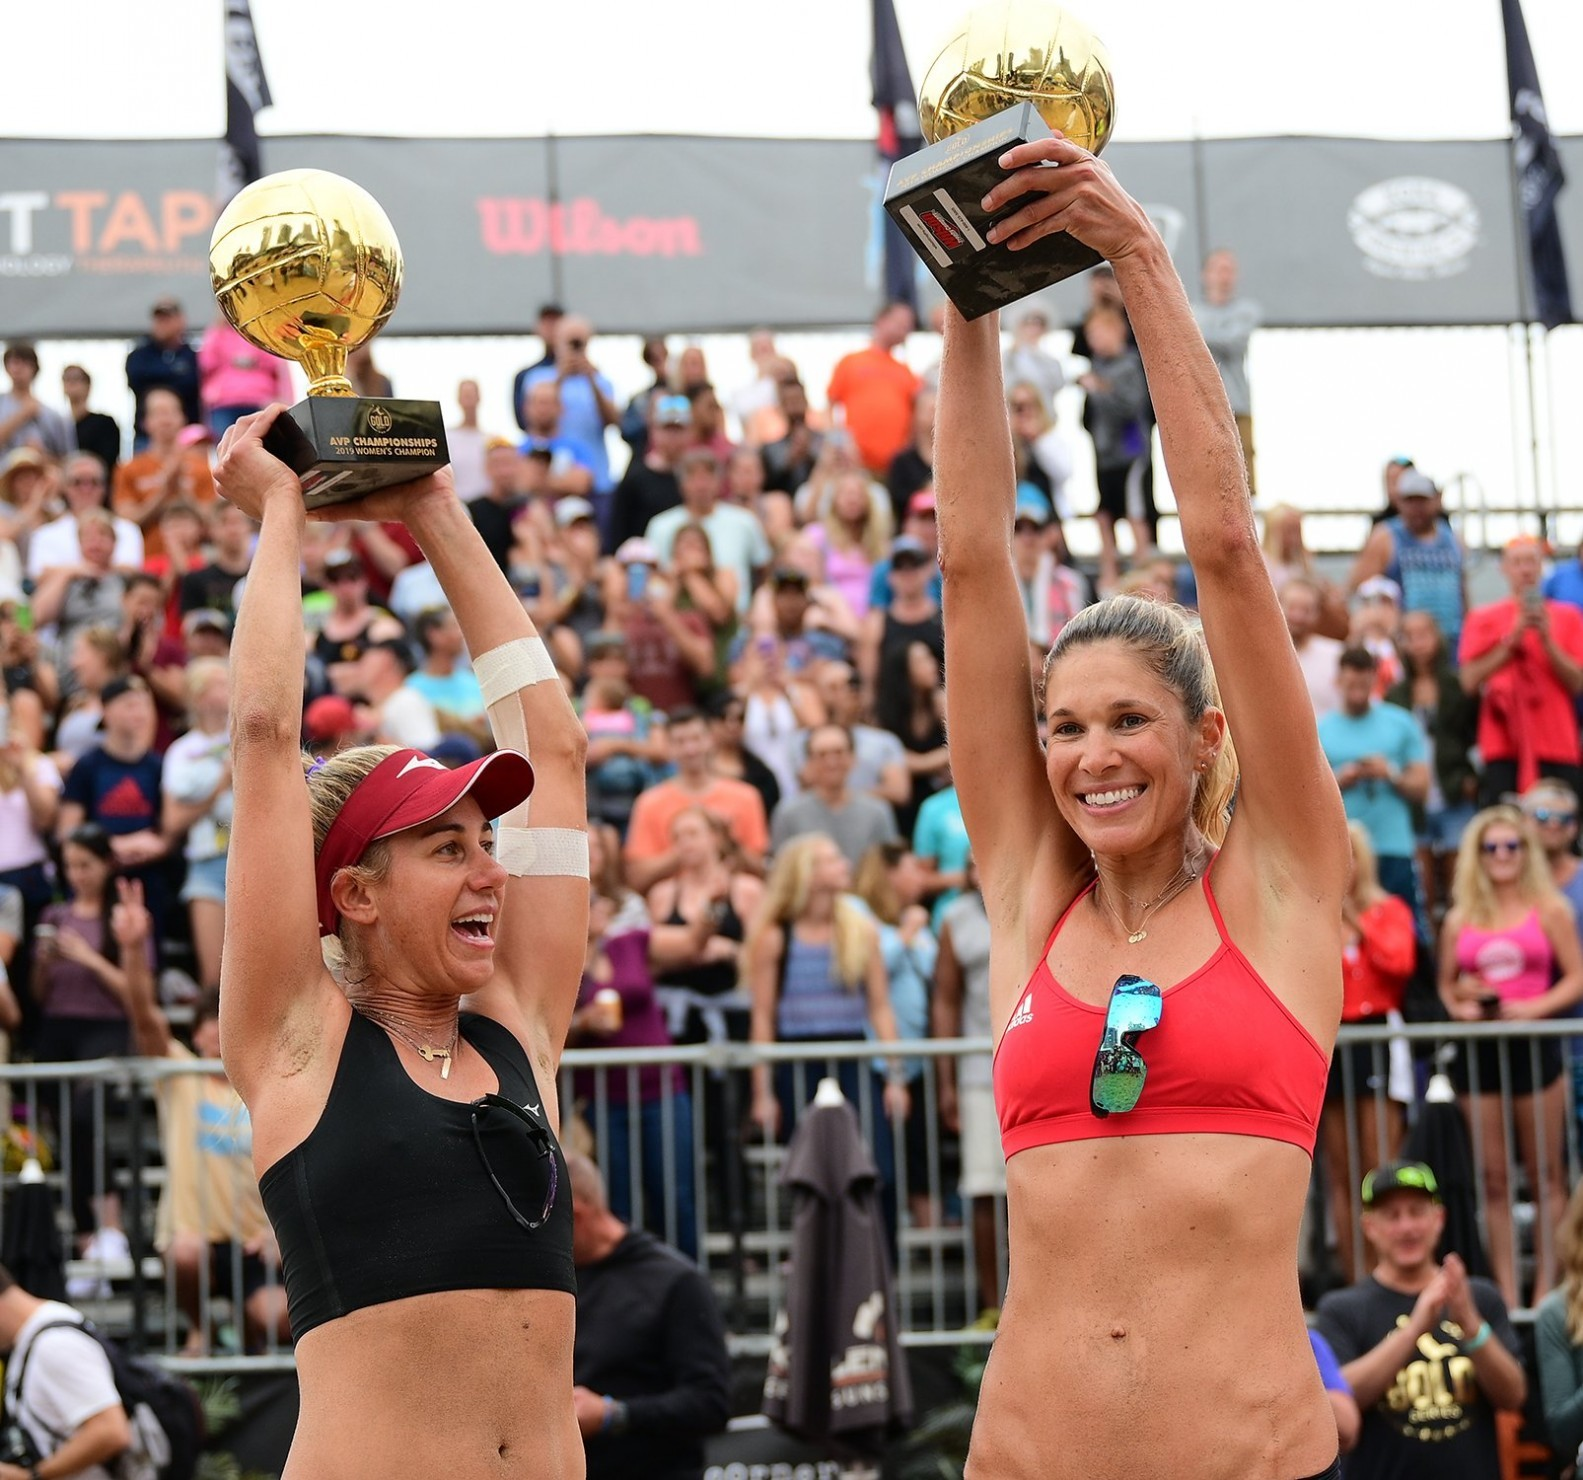 April and Alix lift the AVP trophies in Chicago (Photocredit: AVP)